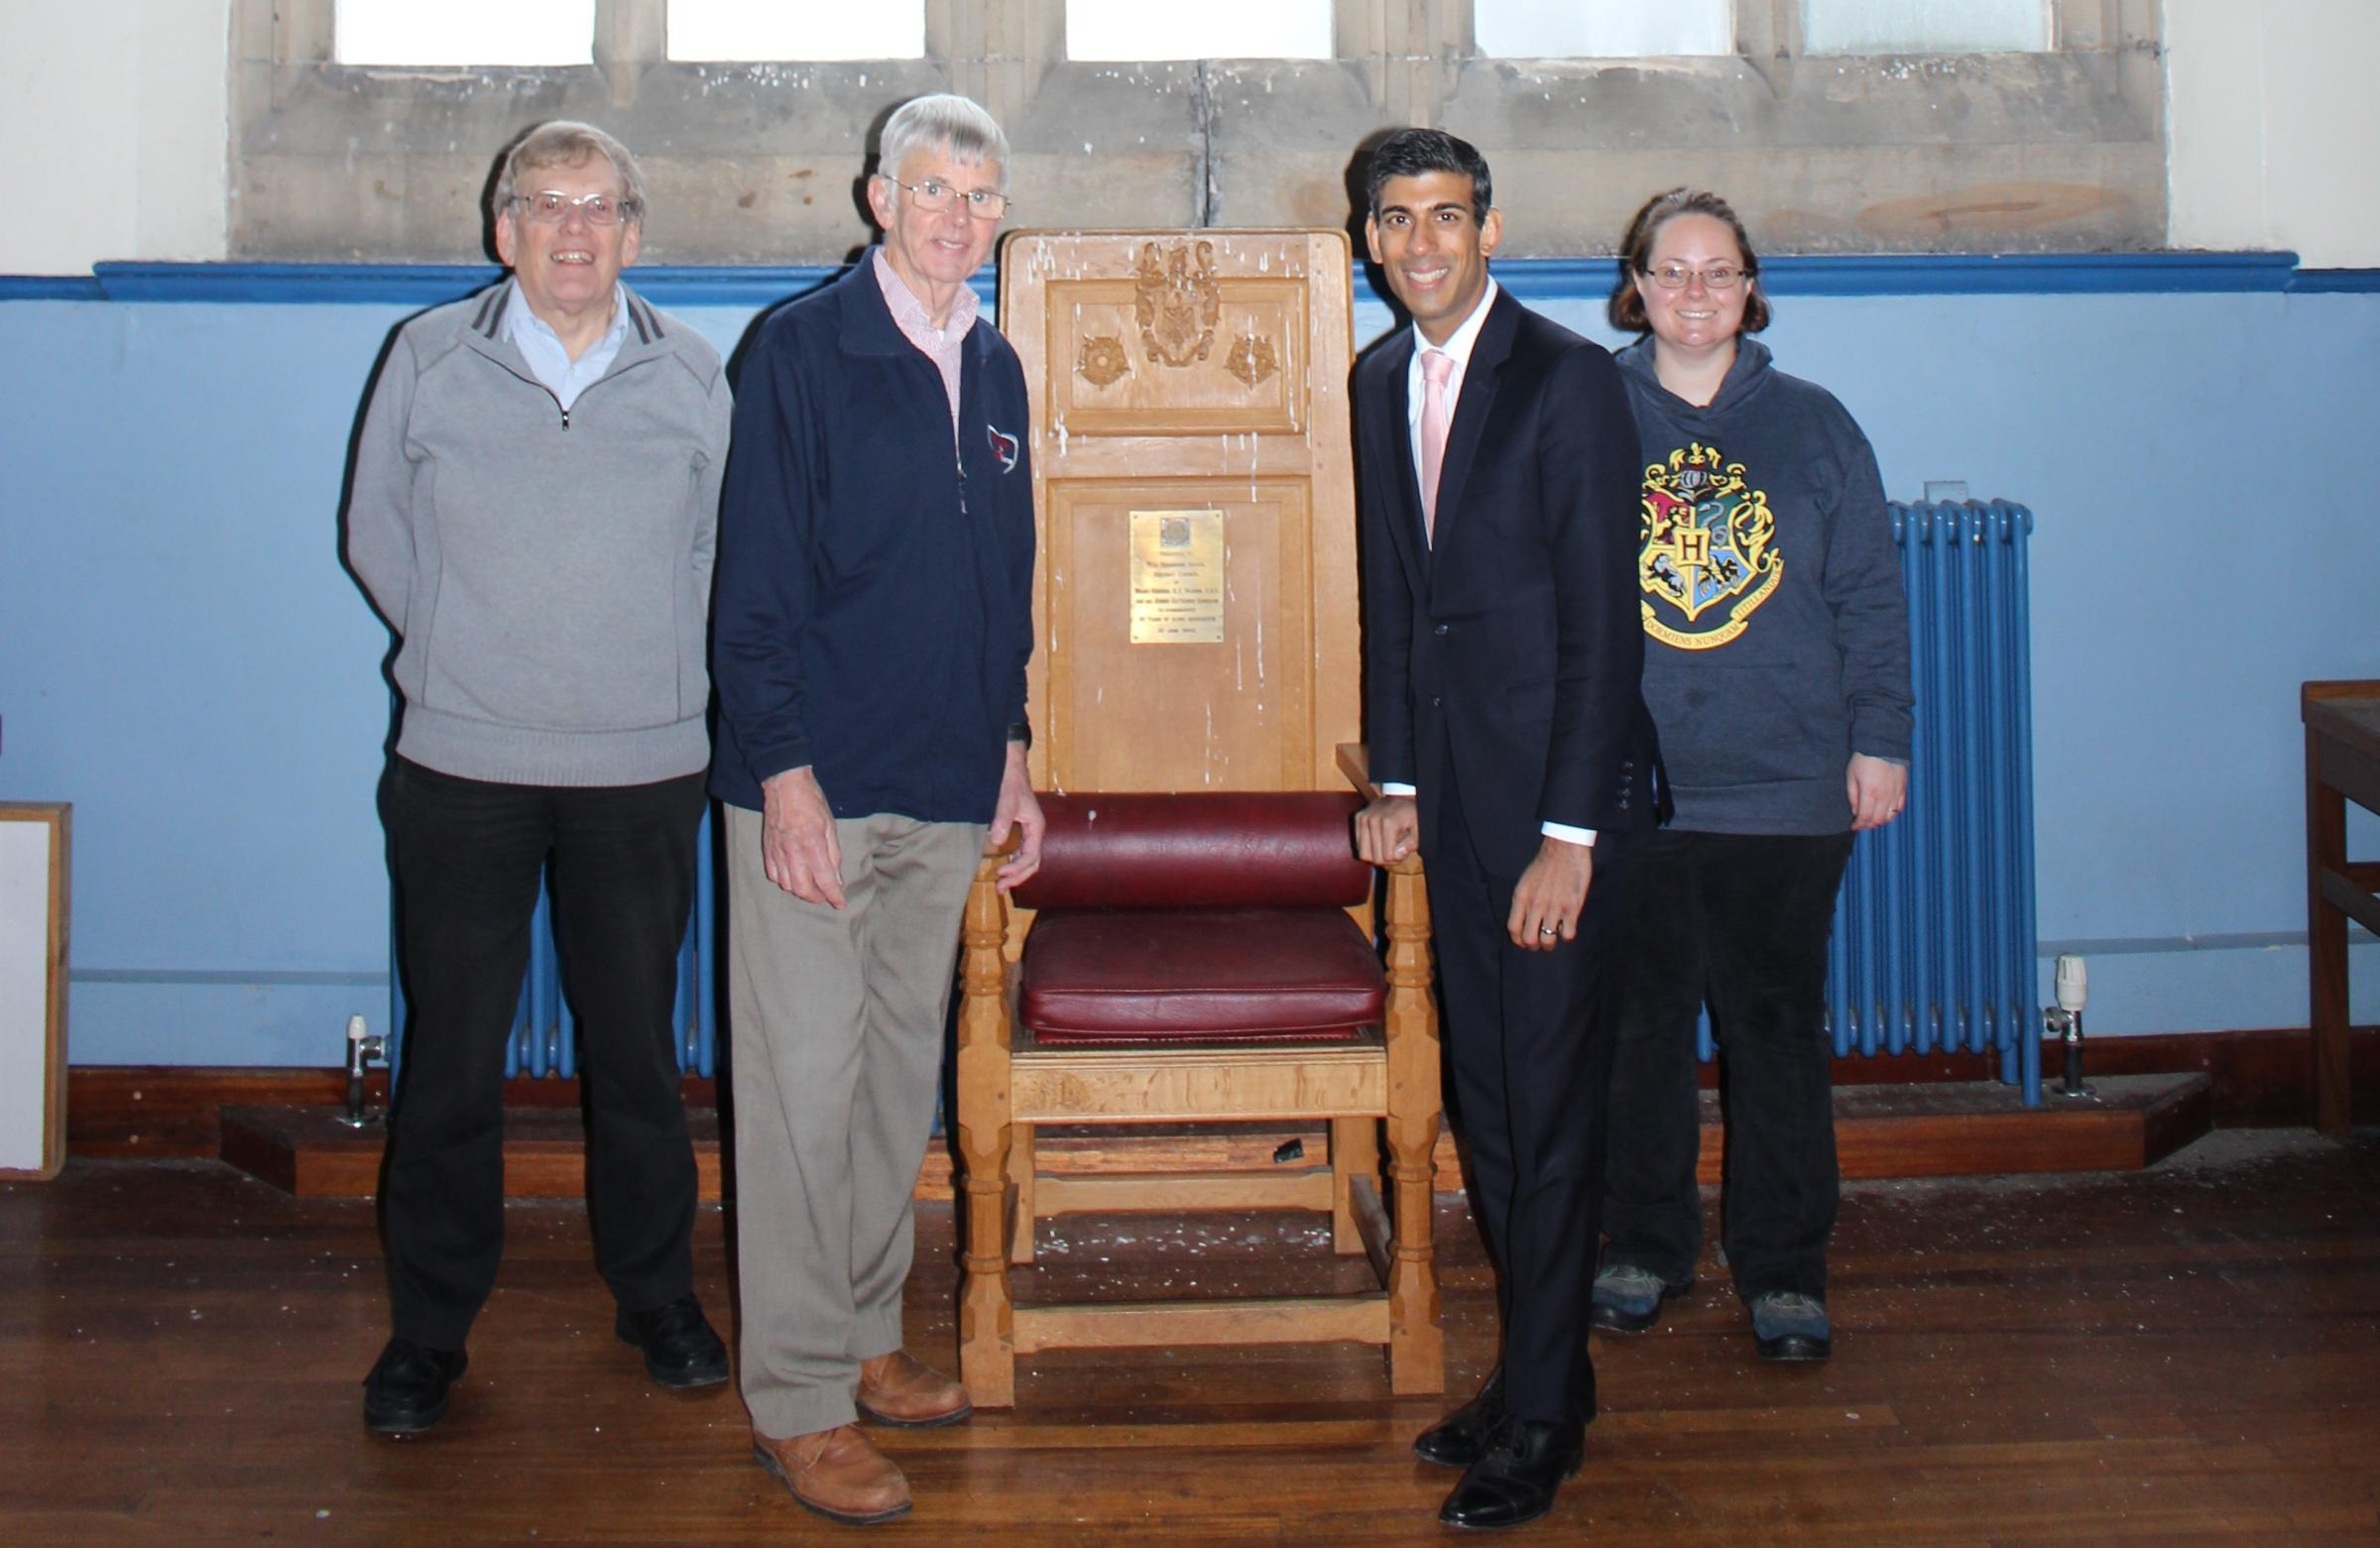 TOUR: James Gravenor, Chair of The Old Grammar School Project Committee; Ian Hepworth, Chair of the Richmondshire Building Preservation Trust; Rishi Sunak, MP; Jennifer Roberts – a volunteer with the project.